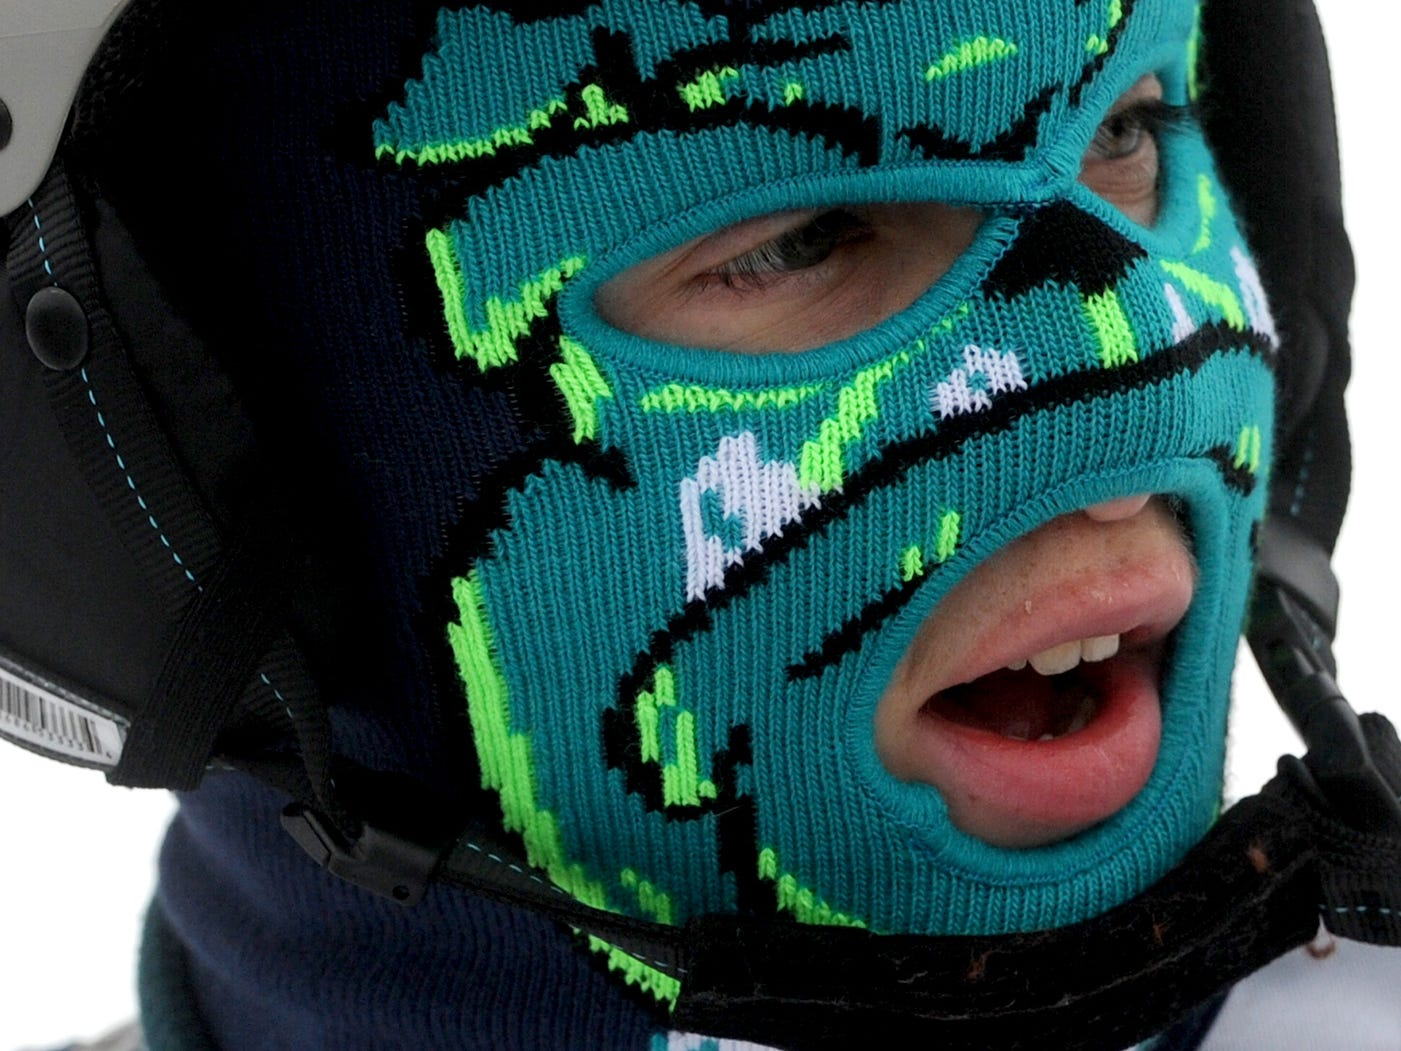 Steven Bower, 14, sports a colorful ski mask during the Special Olympic skiing competition at Roundtop Mountain Resort on January 22, 2015.